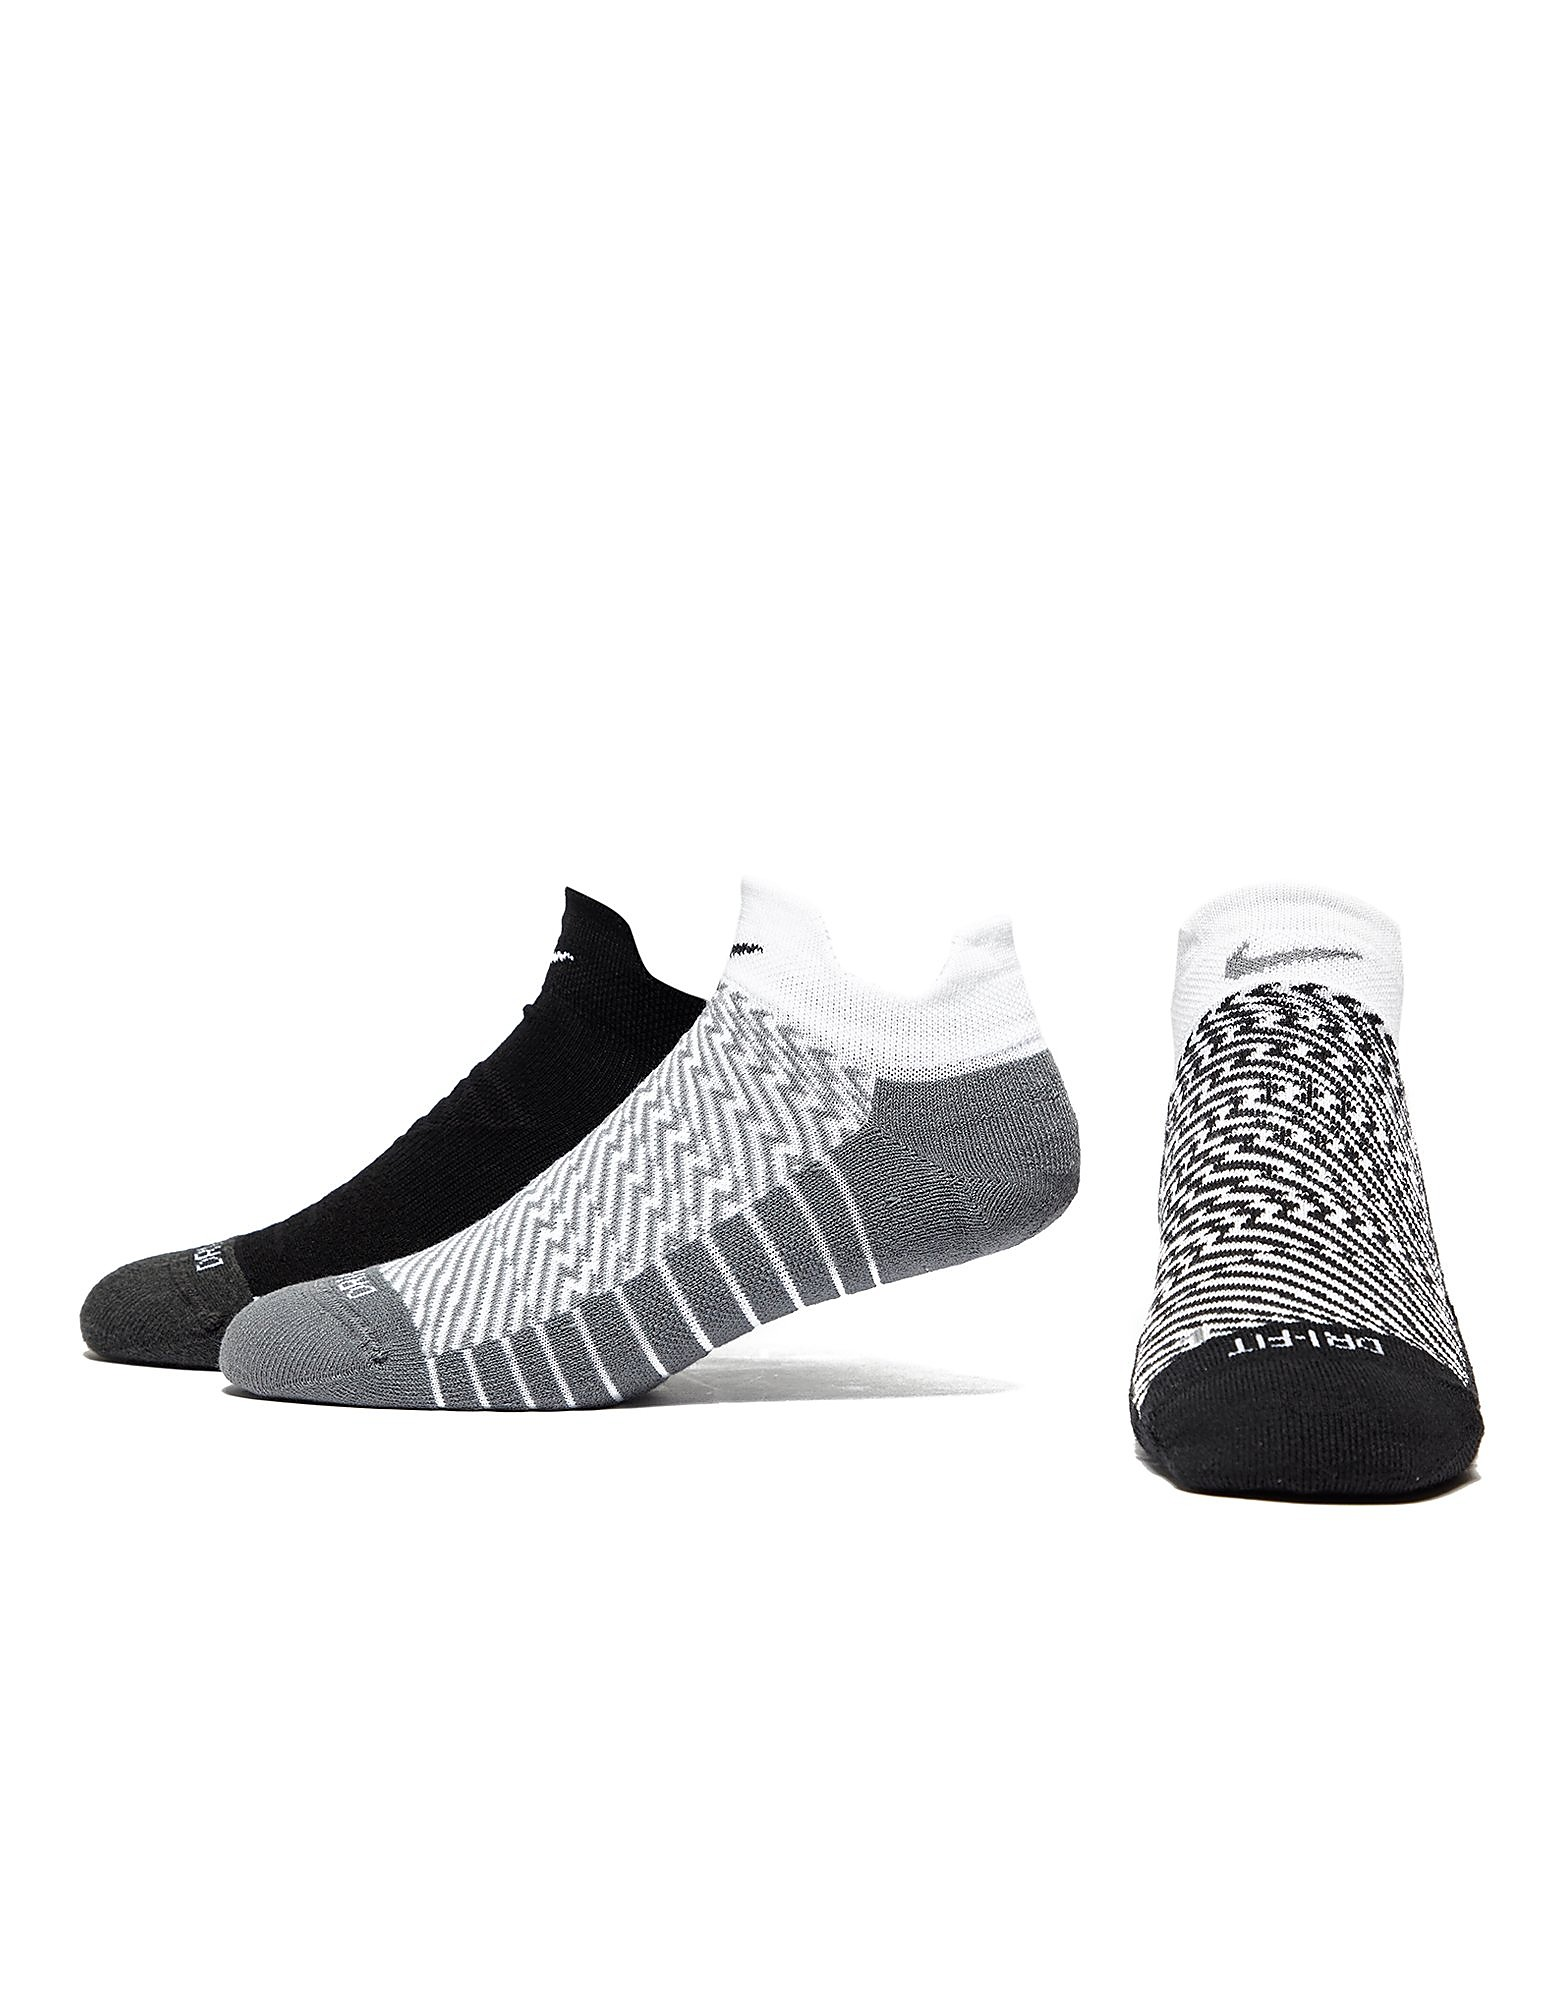 Nike Dry Cushion GFX Training Socks